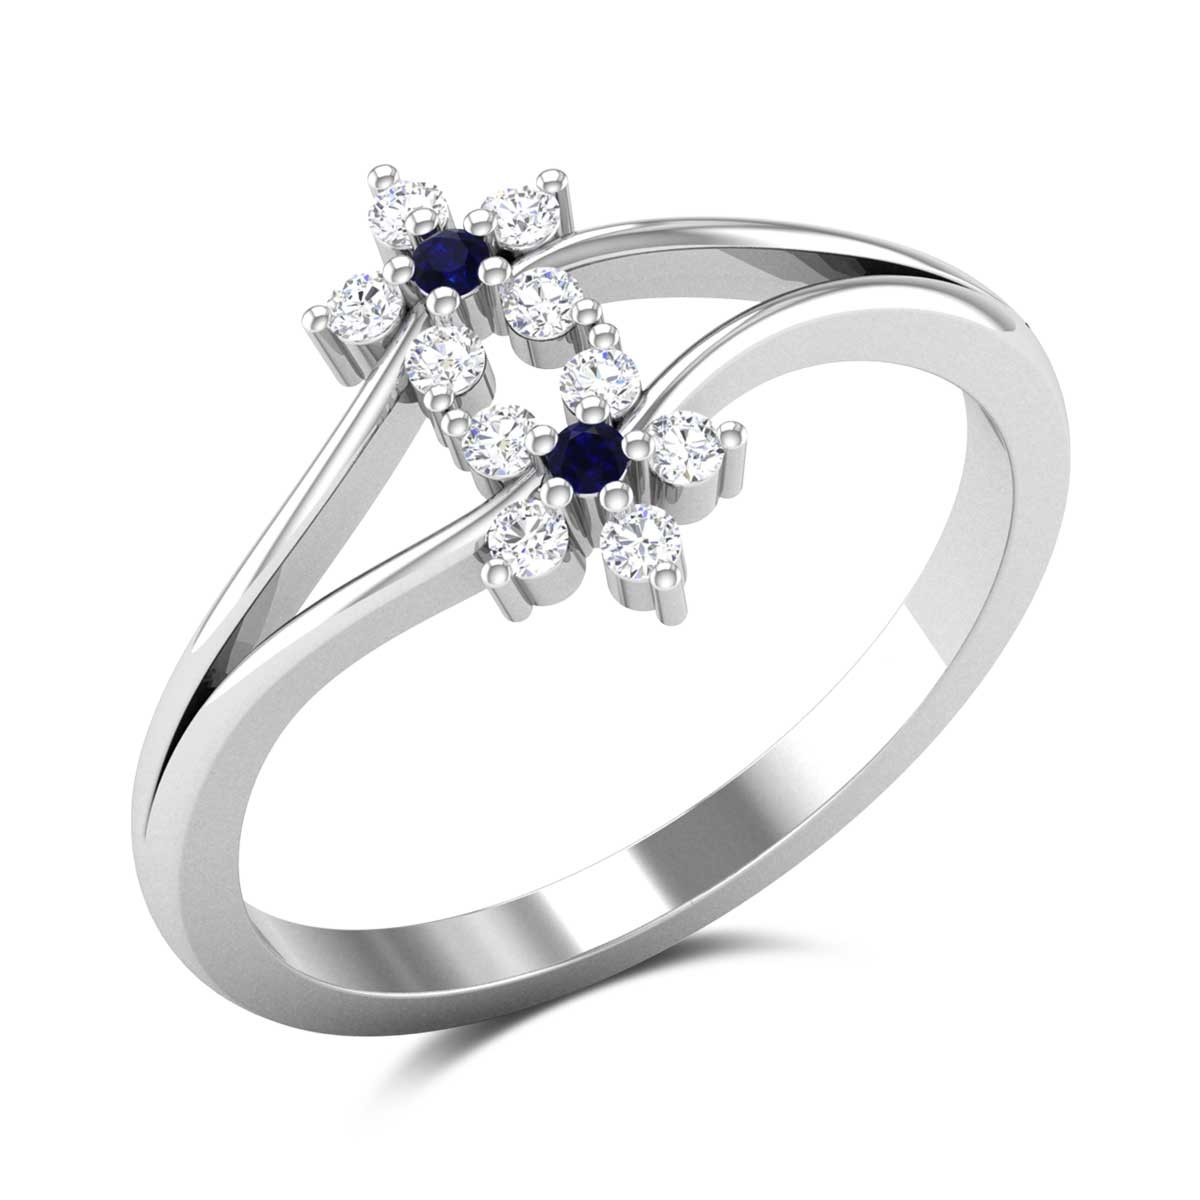 Dual Floral Sapphire Ring